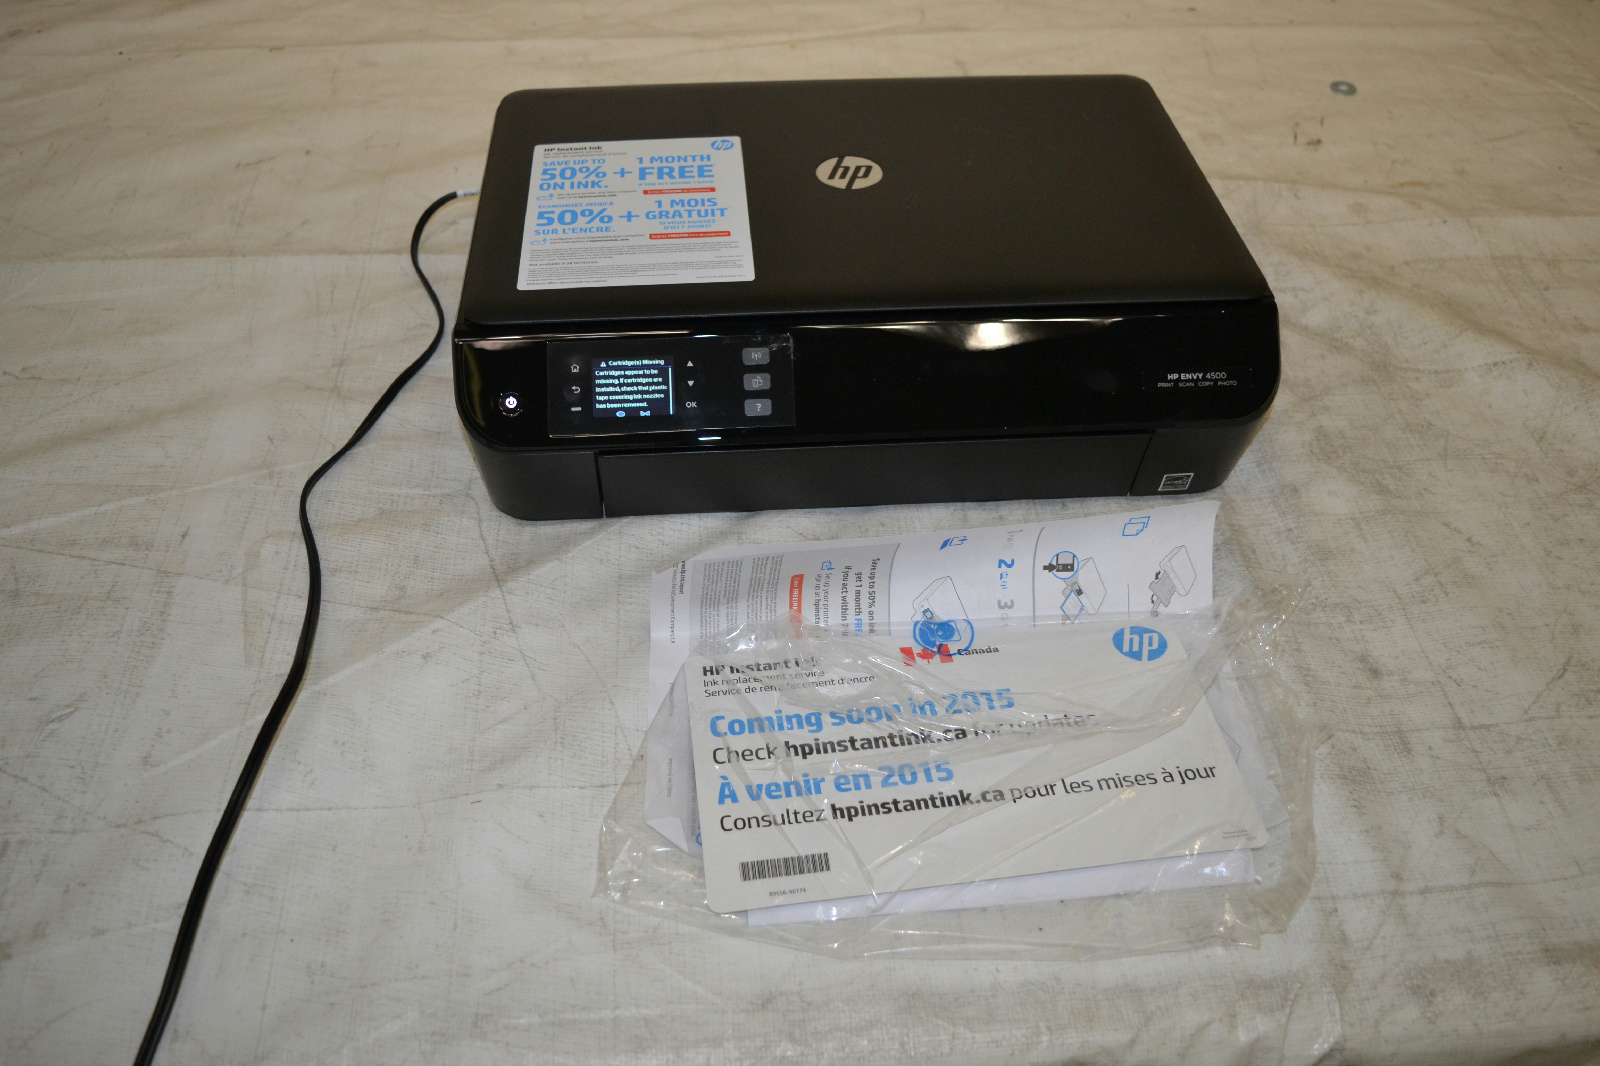 How to connect hp envy 4500 to wifi | learn how to connect wireless printer via wifi For reliable and affordable technical support service contact us.